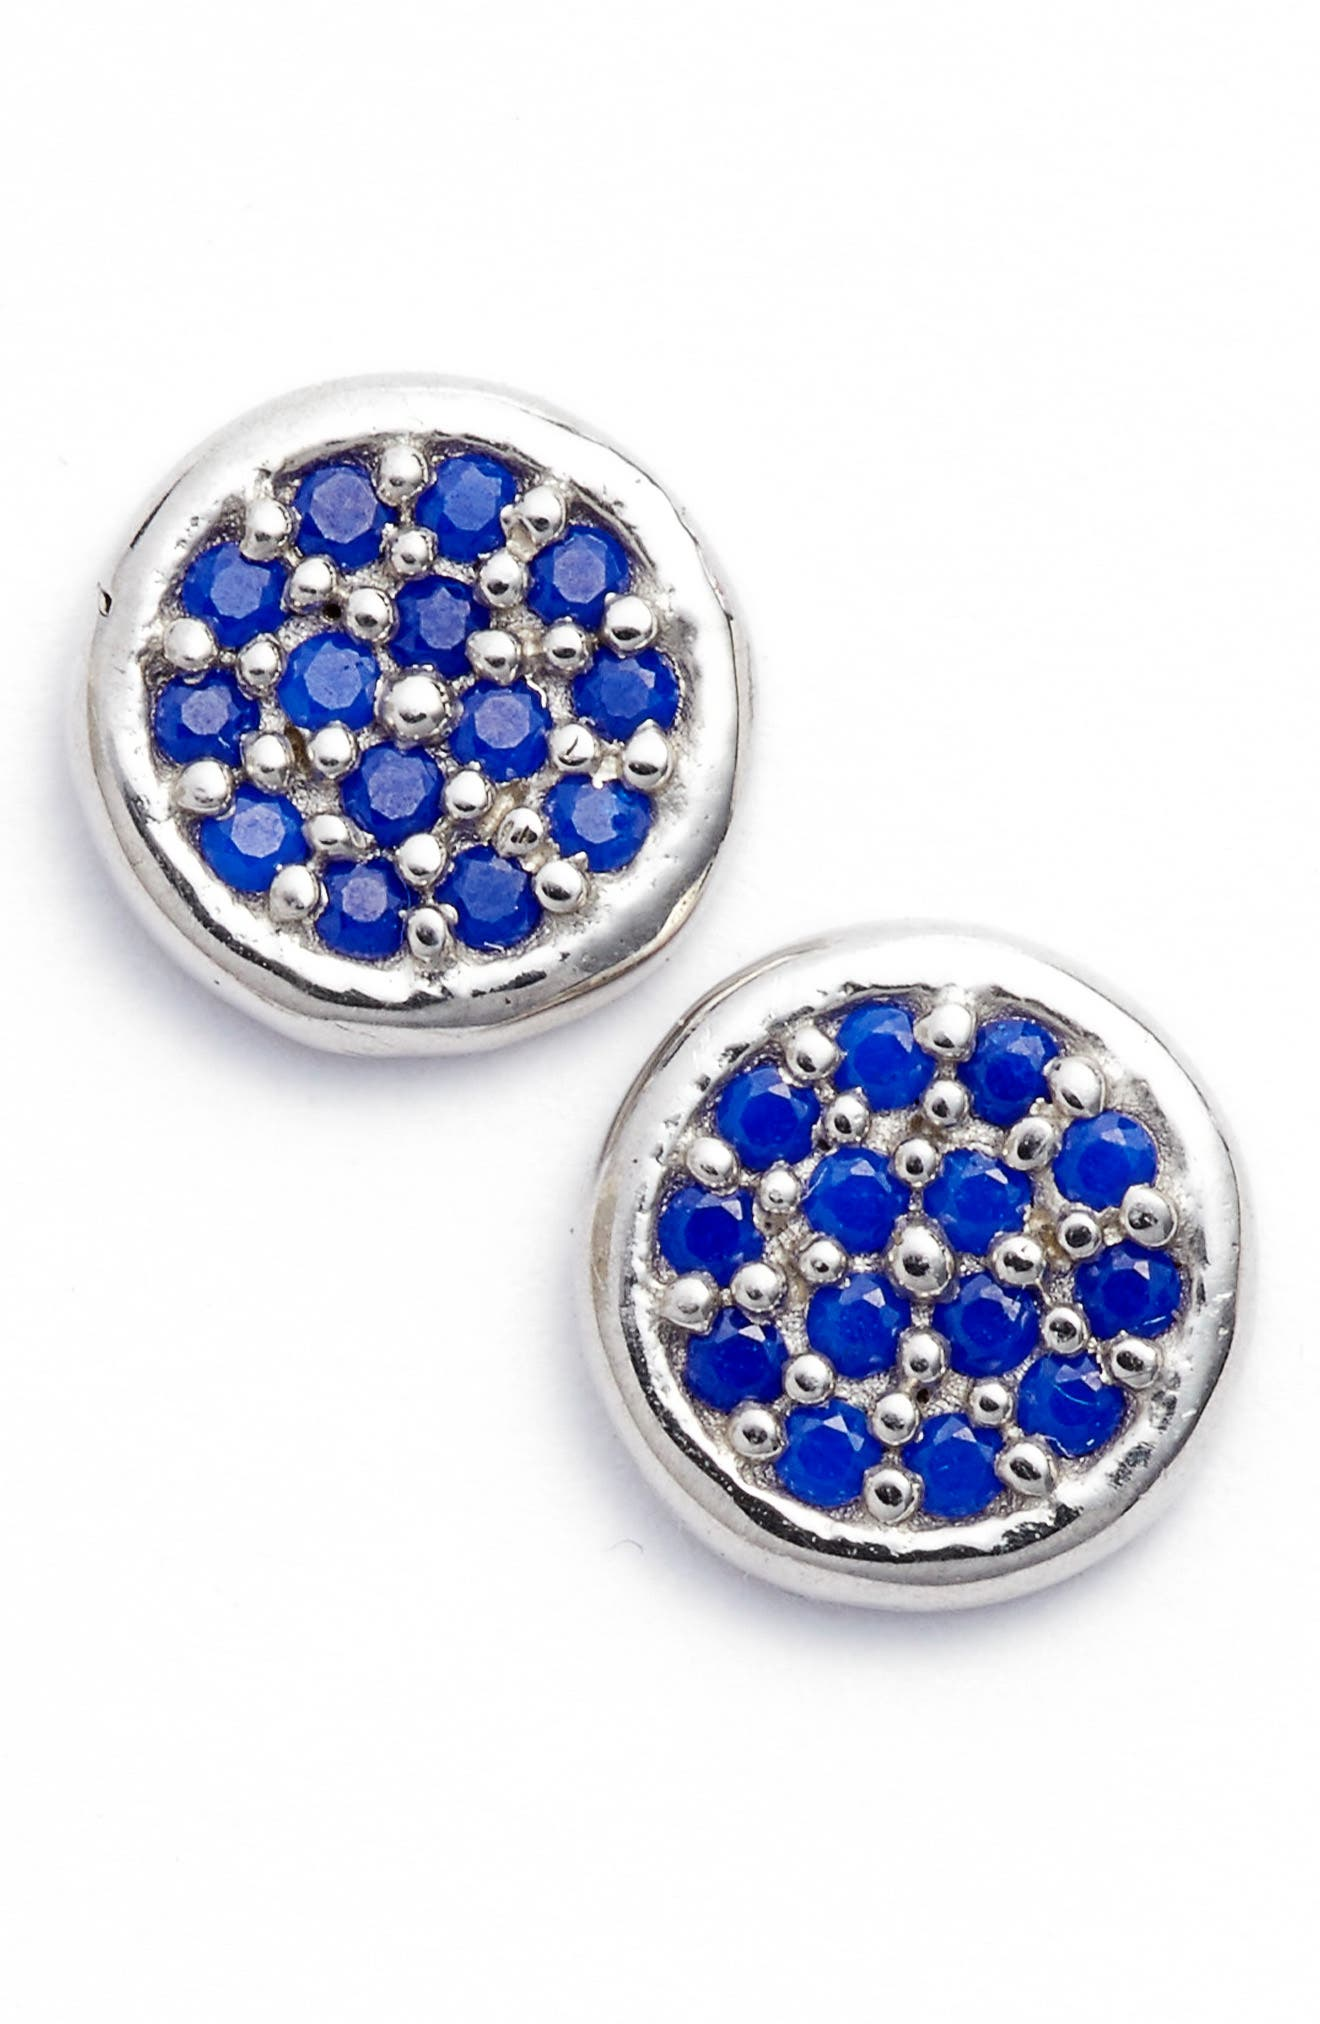 Cubic Zirconia Stud Earrings,                             Main thumbnail 1, color,                             Lapis/ Silver